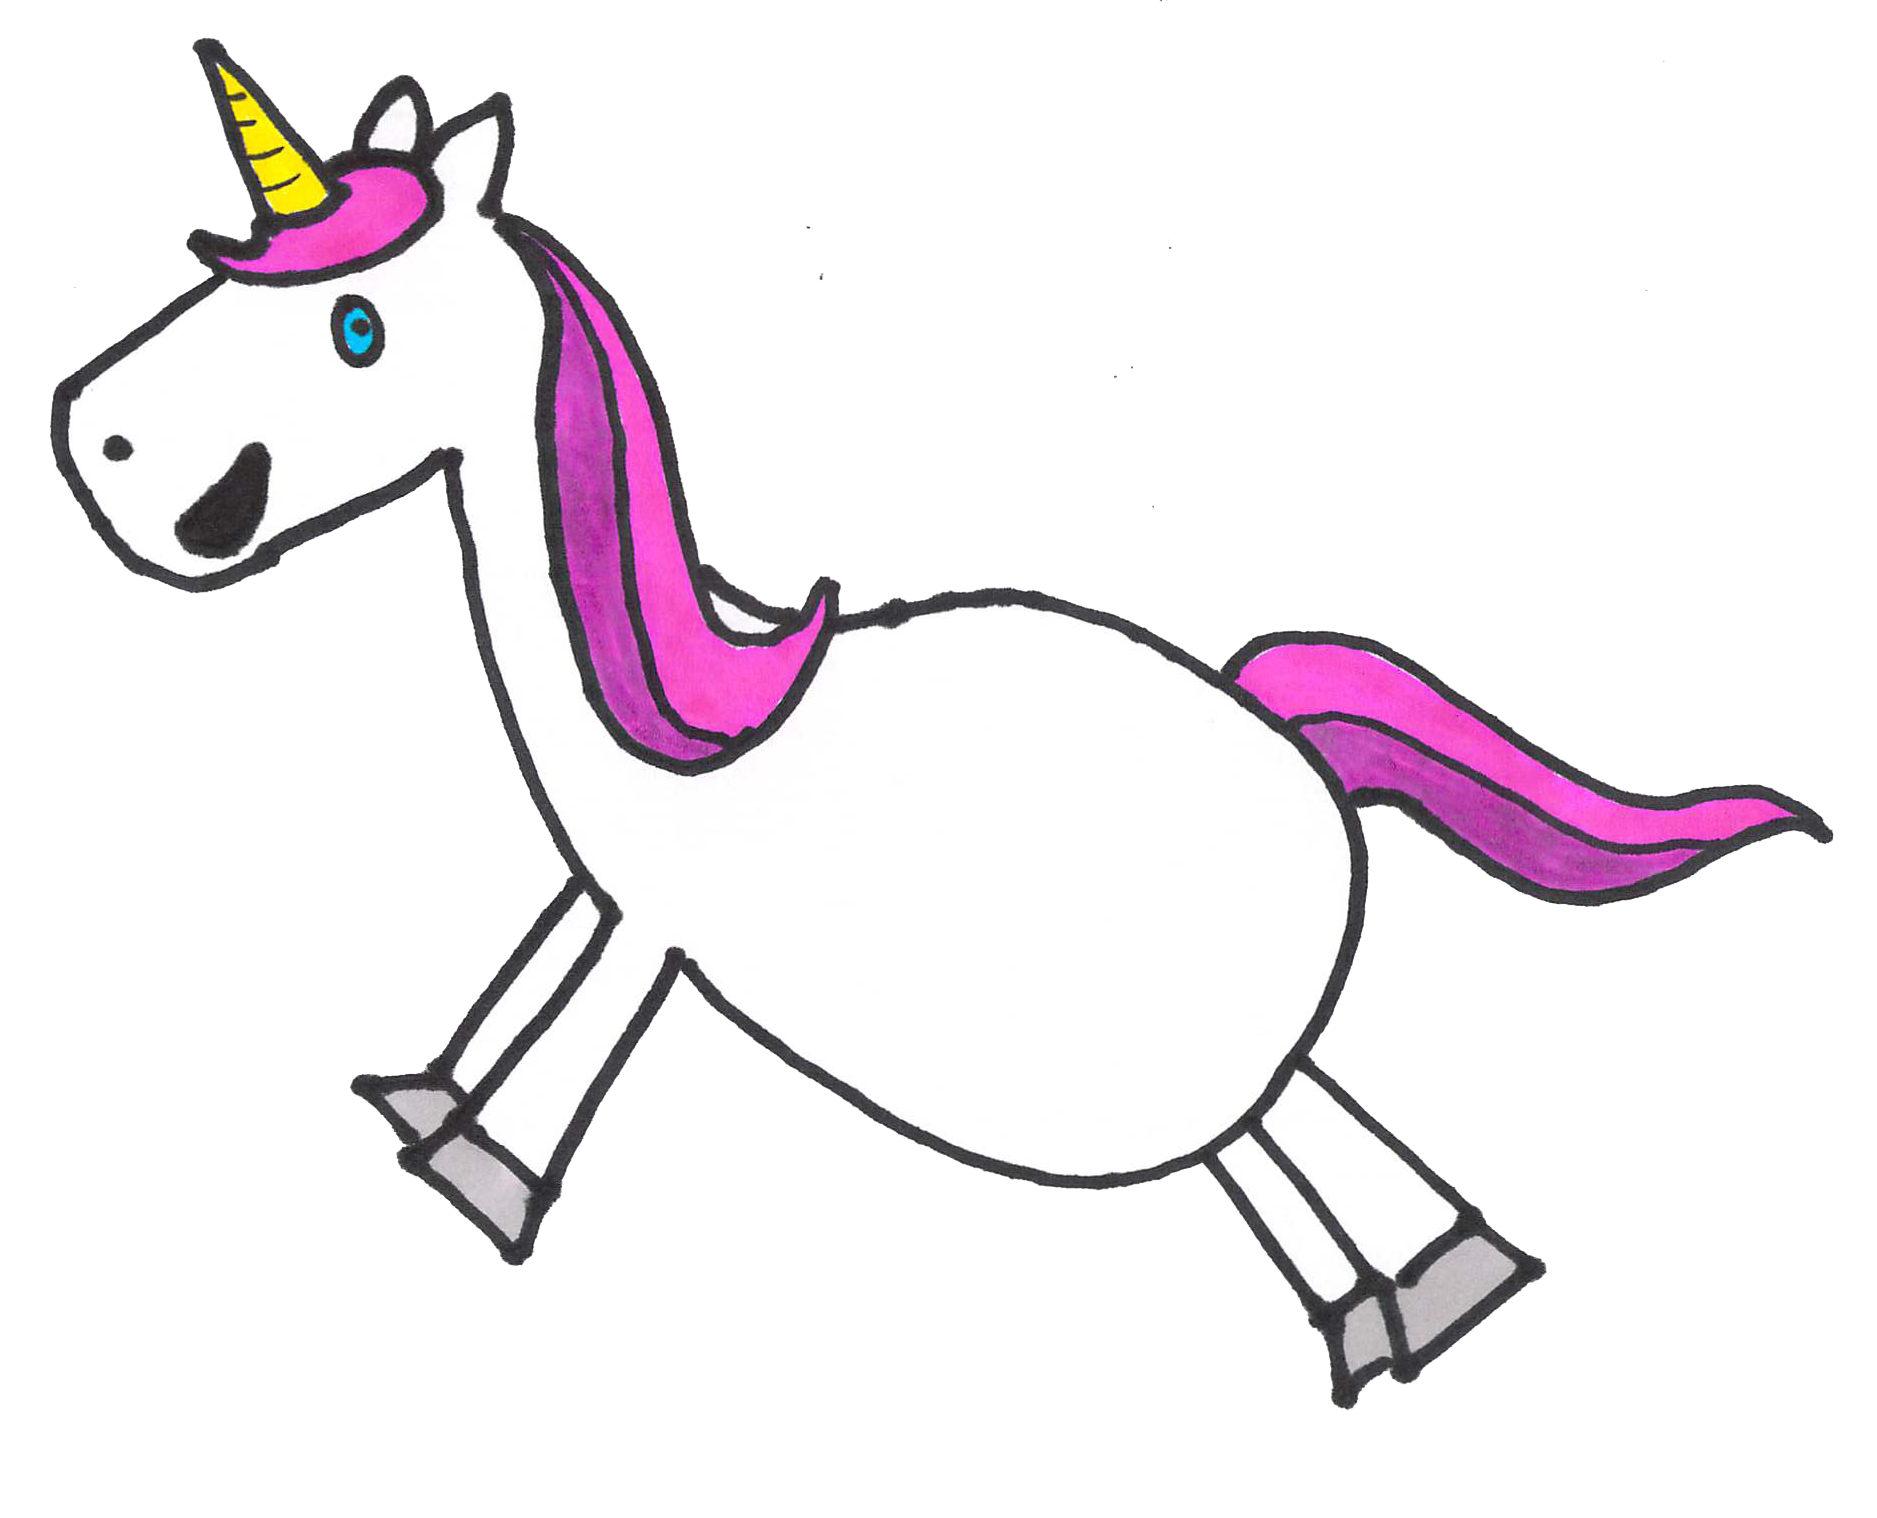 Silicon Valley Startup Unicorn